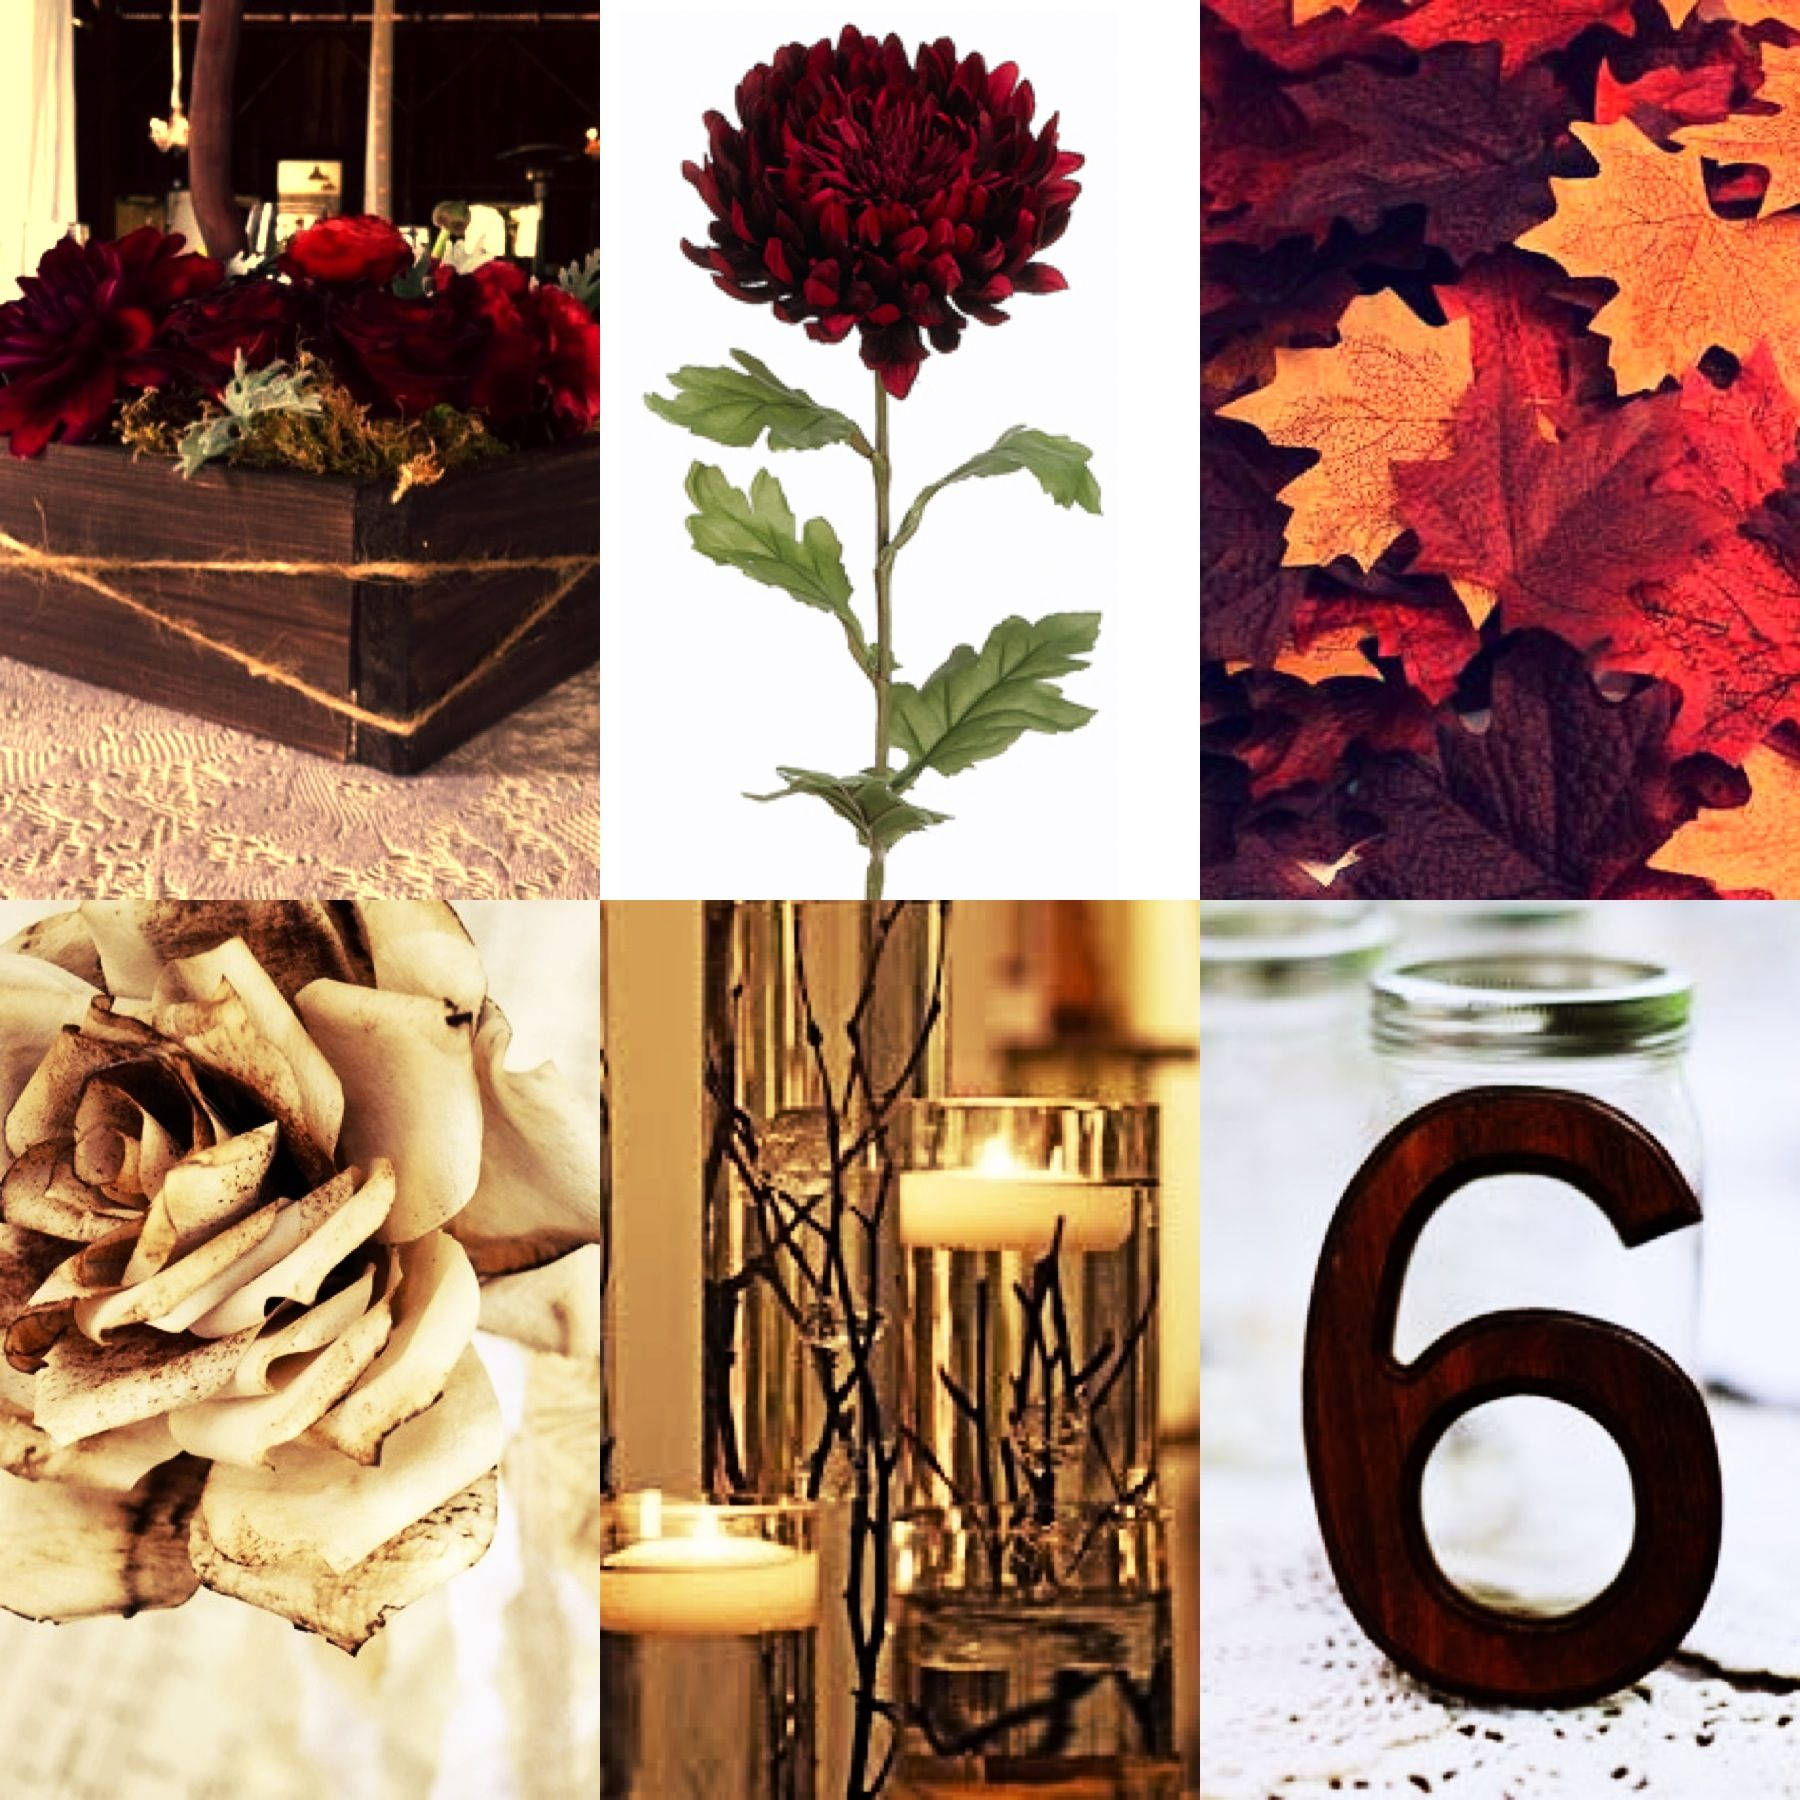 Outdoor November Wedding Flowers: Autumn/Fall Outdoor Wedding Reception, Red Cream And Brown